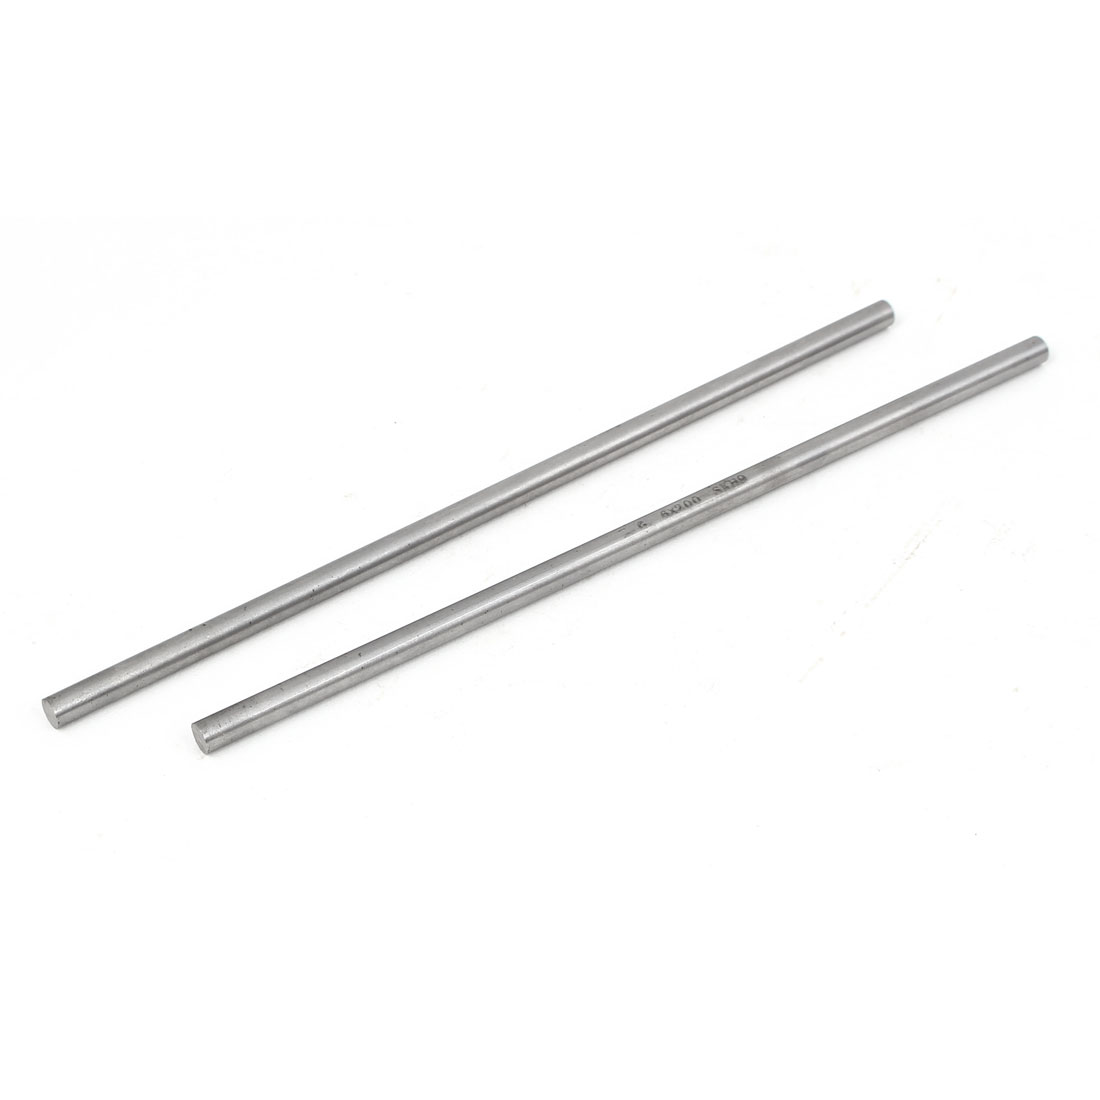 6mm x 200mm Metal Machine Turning Tools Rod Bar Lathe Round Stick 2pcs